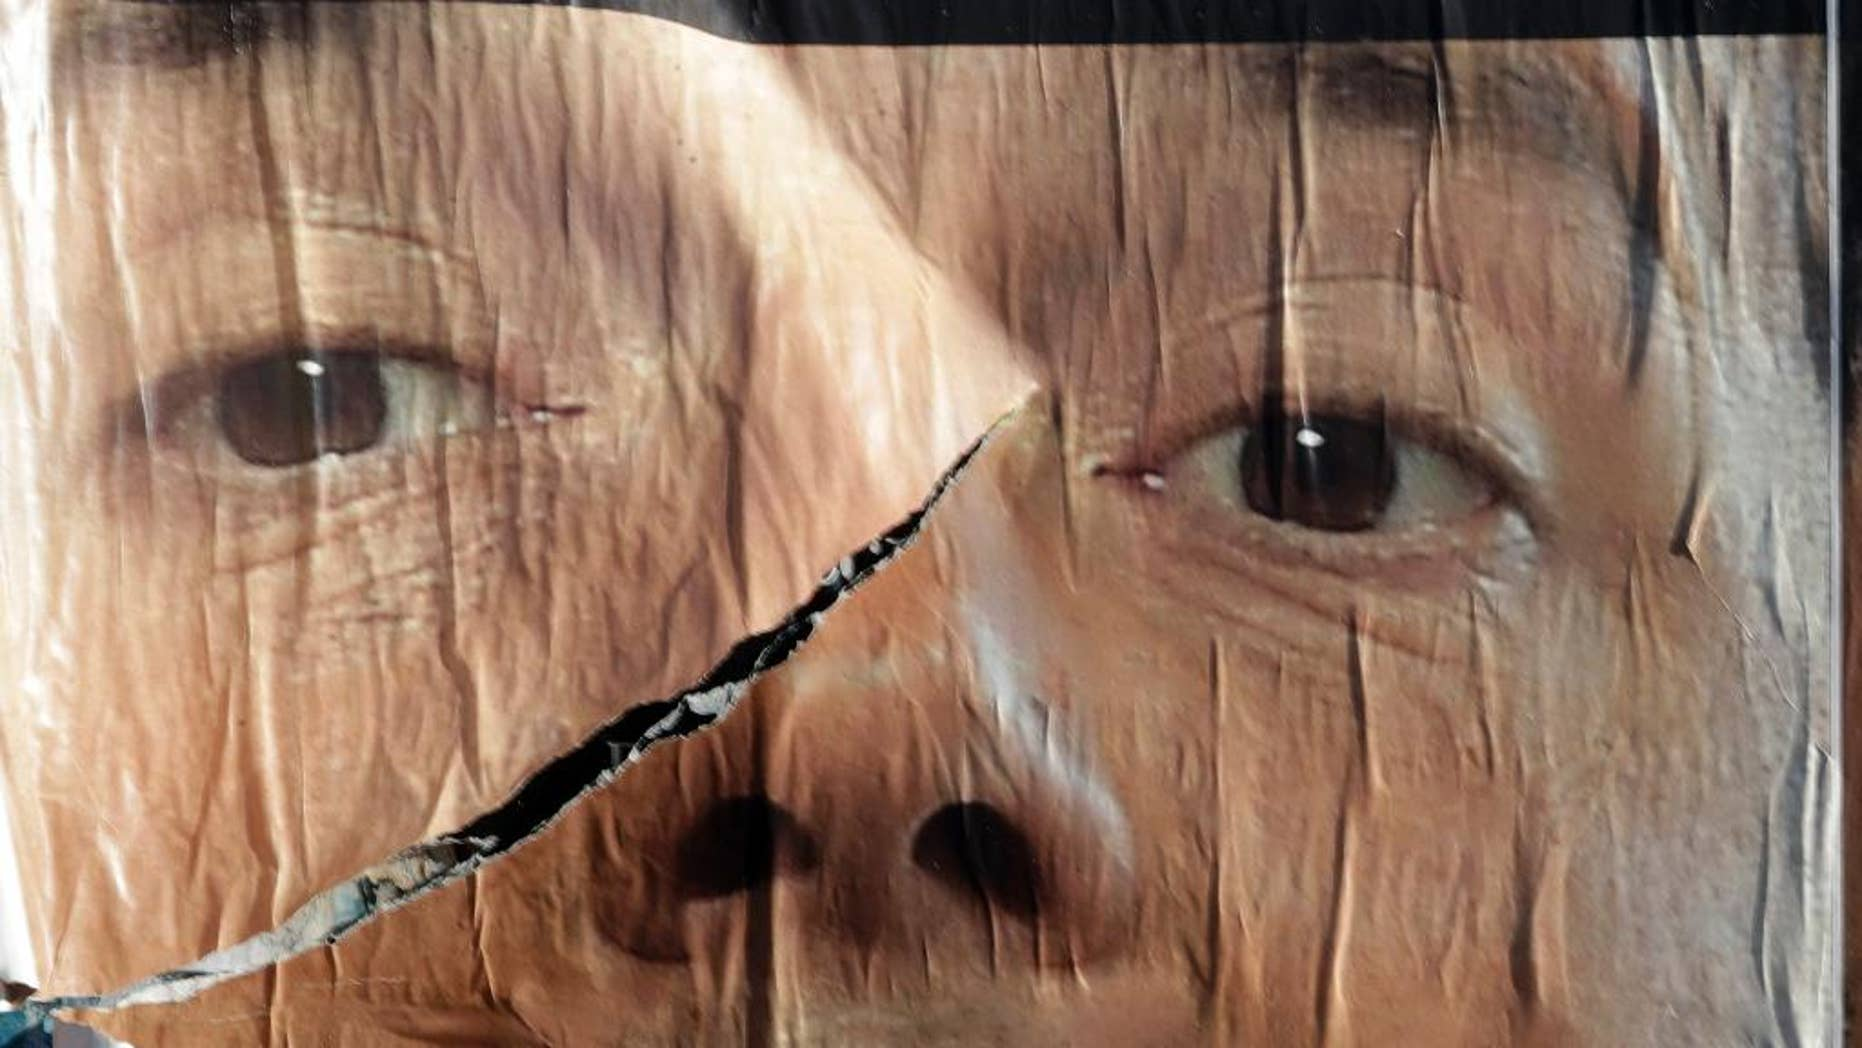 A torn anti-referendum poster shows Premier Matteo Renzi, in Rome, Monday, Dec. 5, 2016. Italian voters dealt Premier Renzi a resounding rebuke early Monday by rejecting his proposed constitutional reforms, plunging Europe's fourth-largest economy into political and economic uncertainty. (AP Photo/Gregorio Borgia)